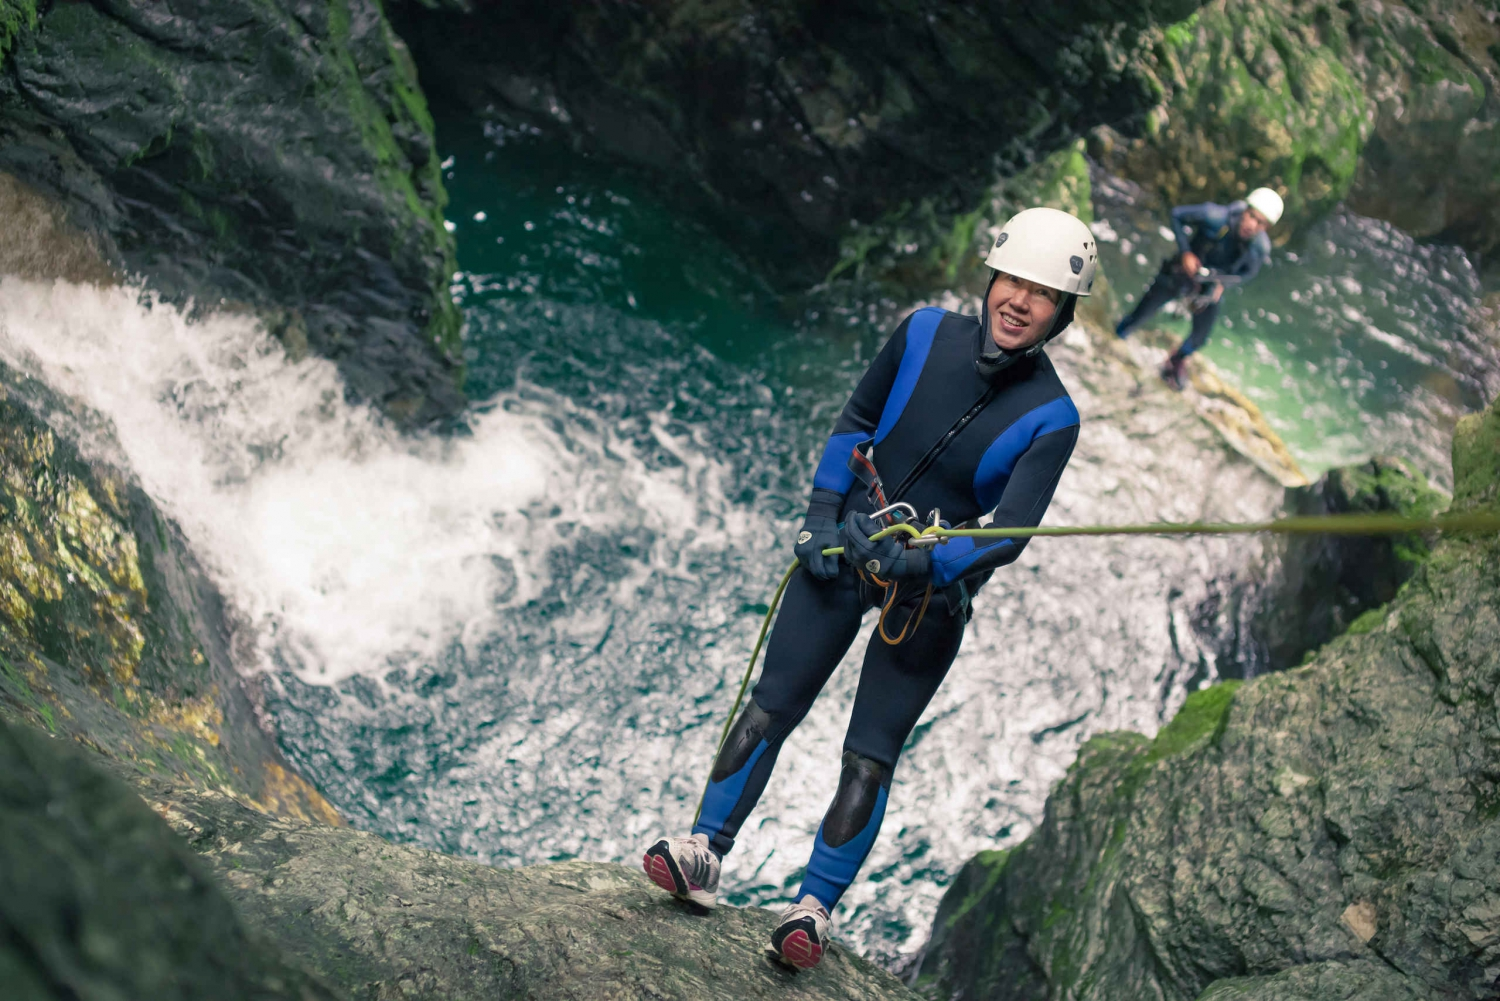 Bled: Amazing Canyoning Adventure Half-Day Tour